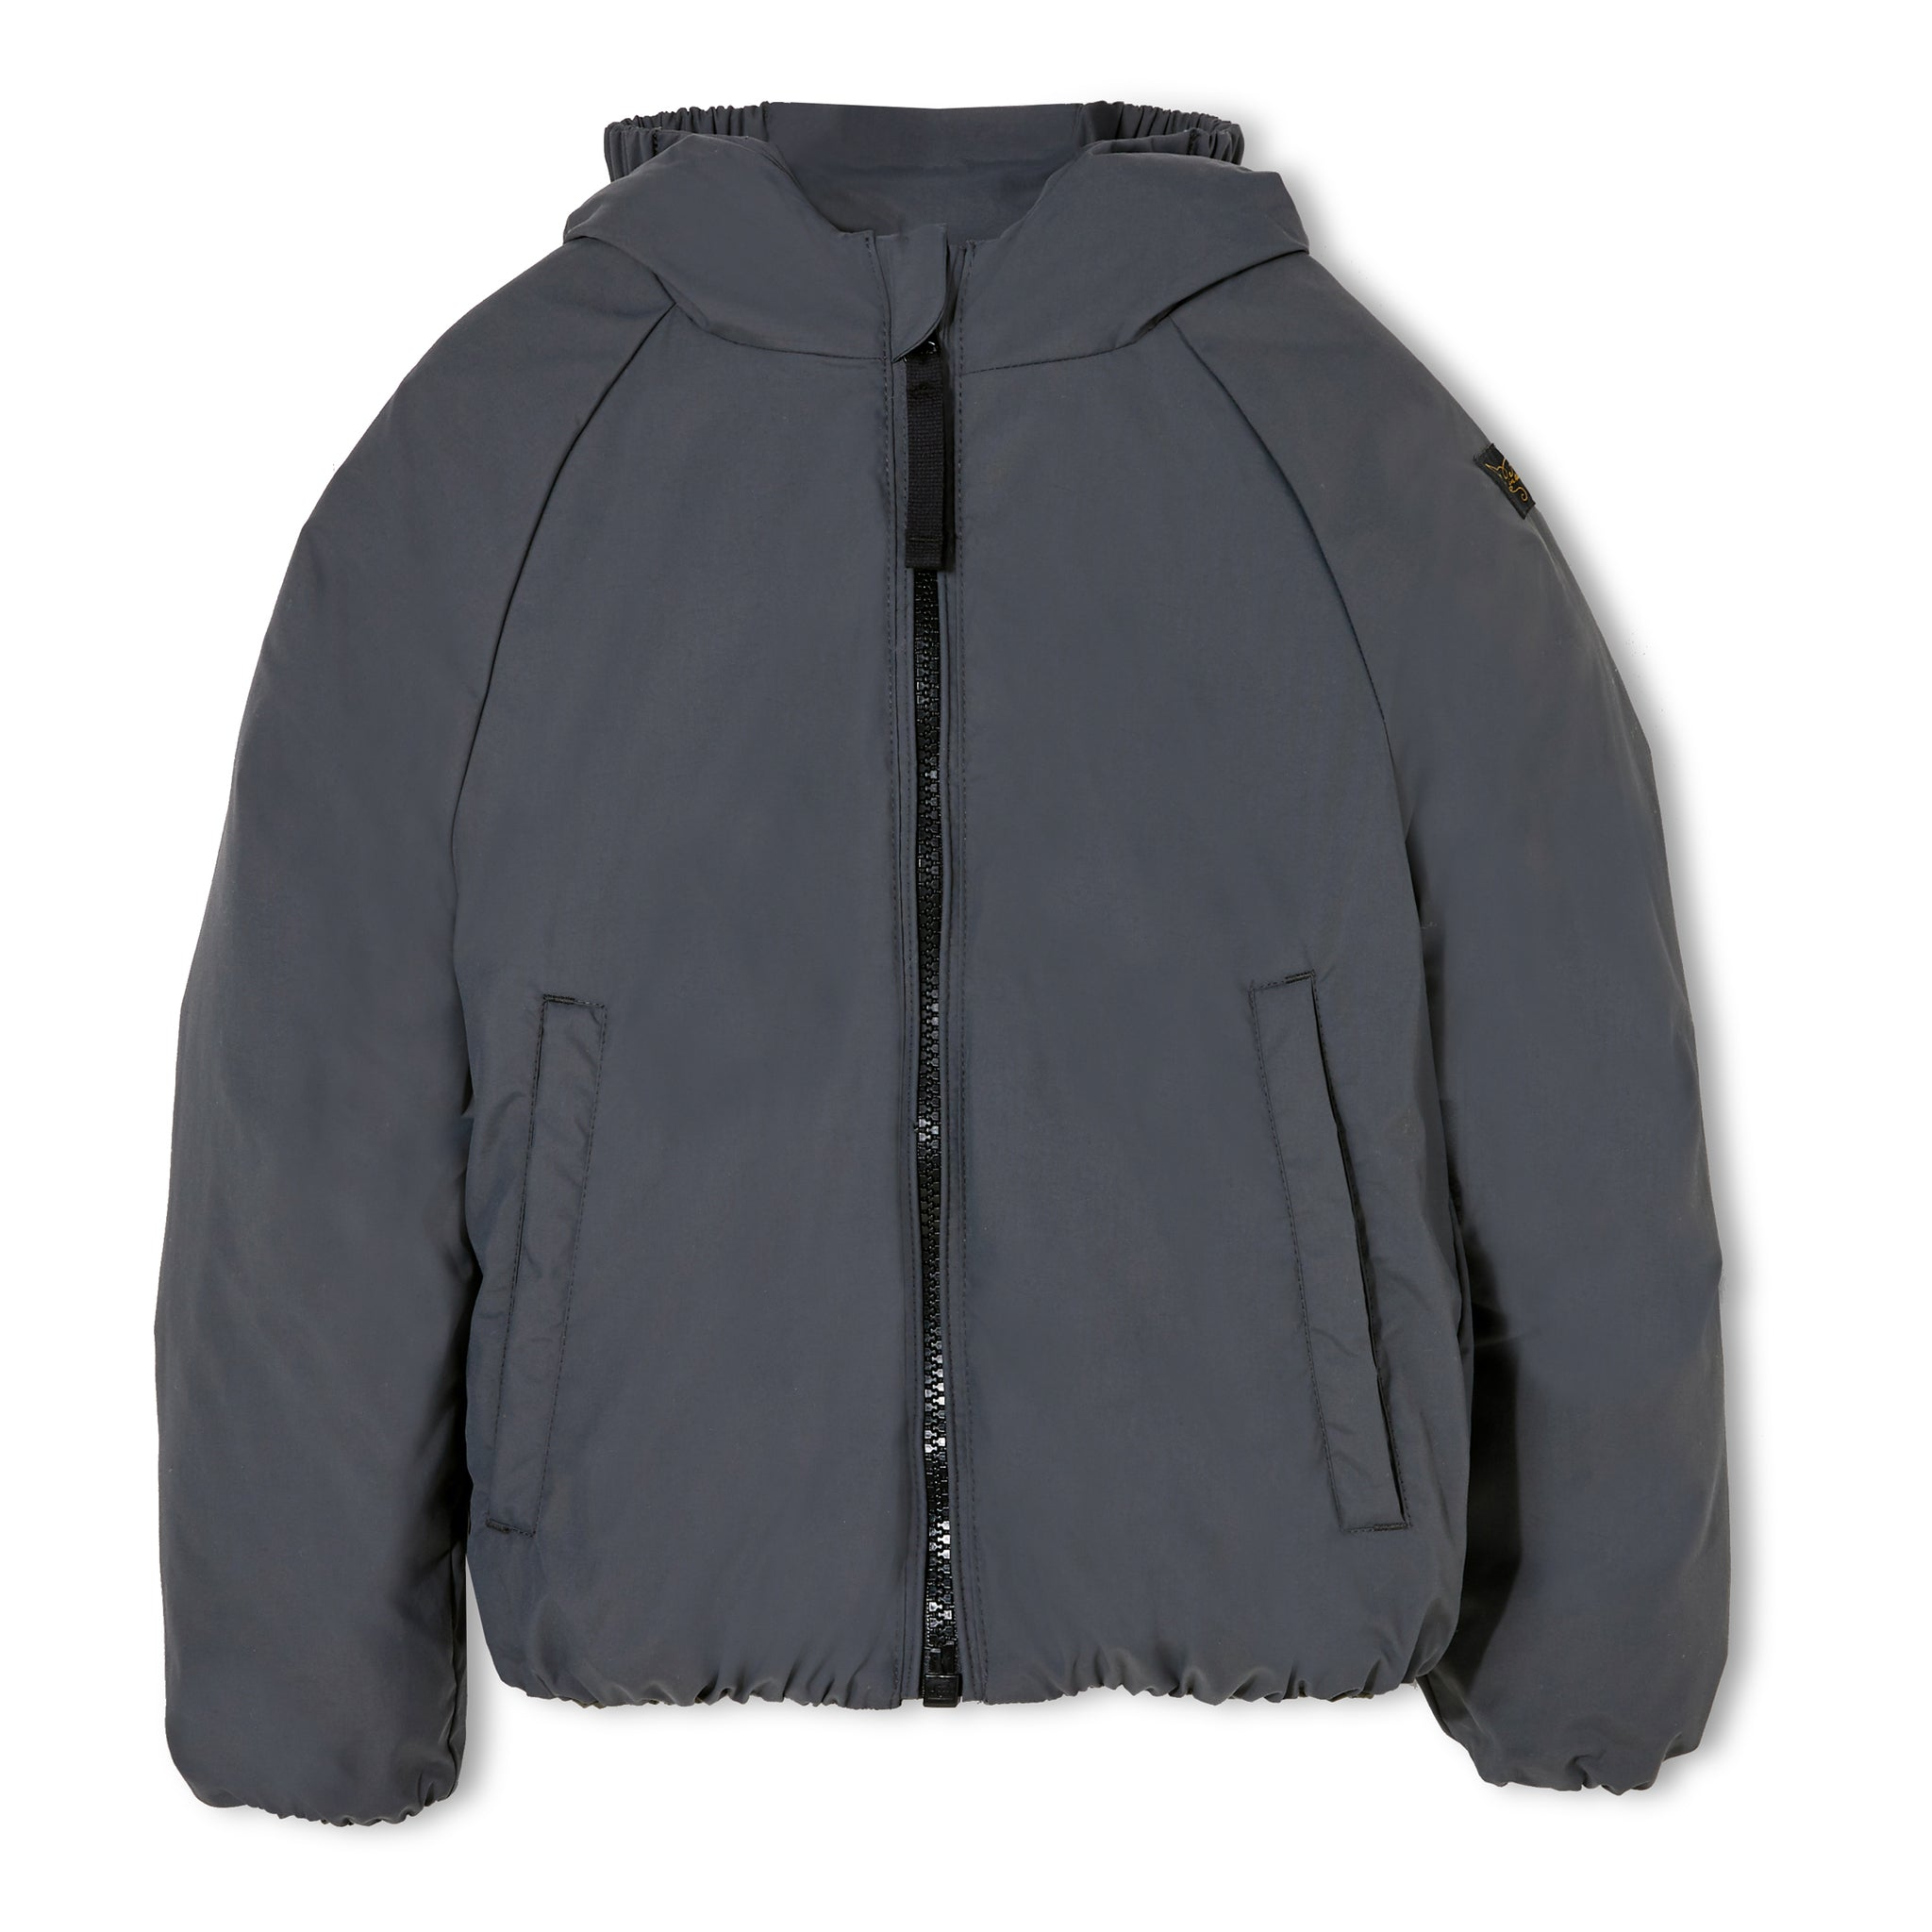 SNOWSCOUT Ash Black - Reversible Down Jacket 4